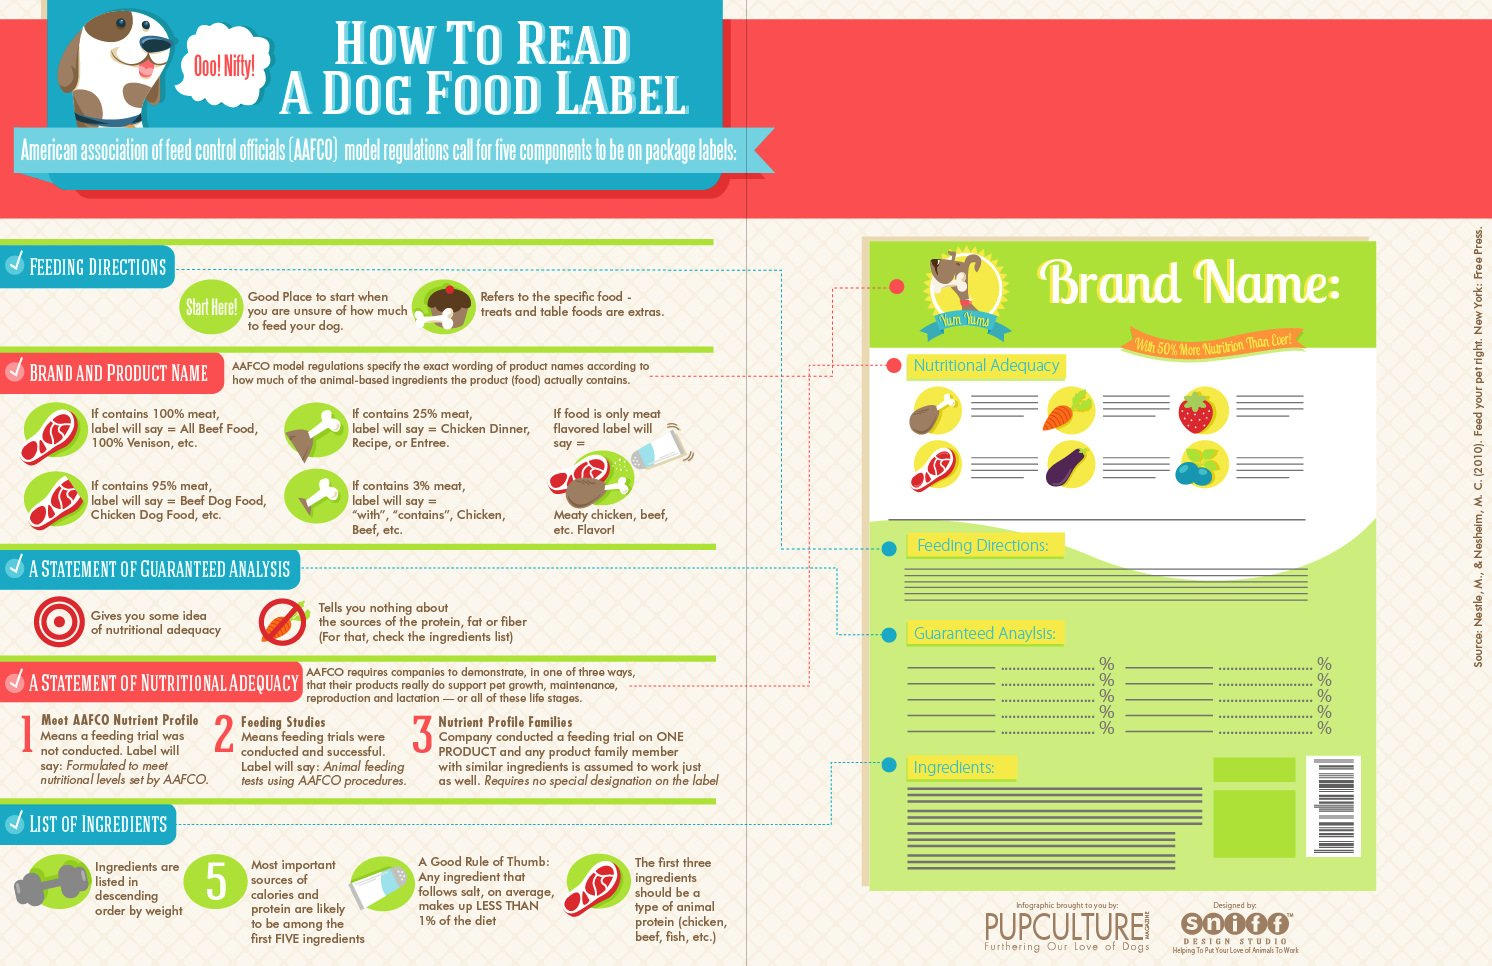 Dog Food Label Infographic - Very Informative! | Sniff